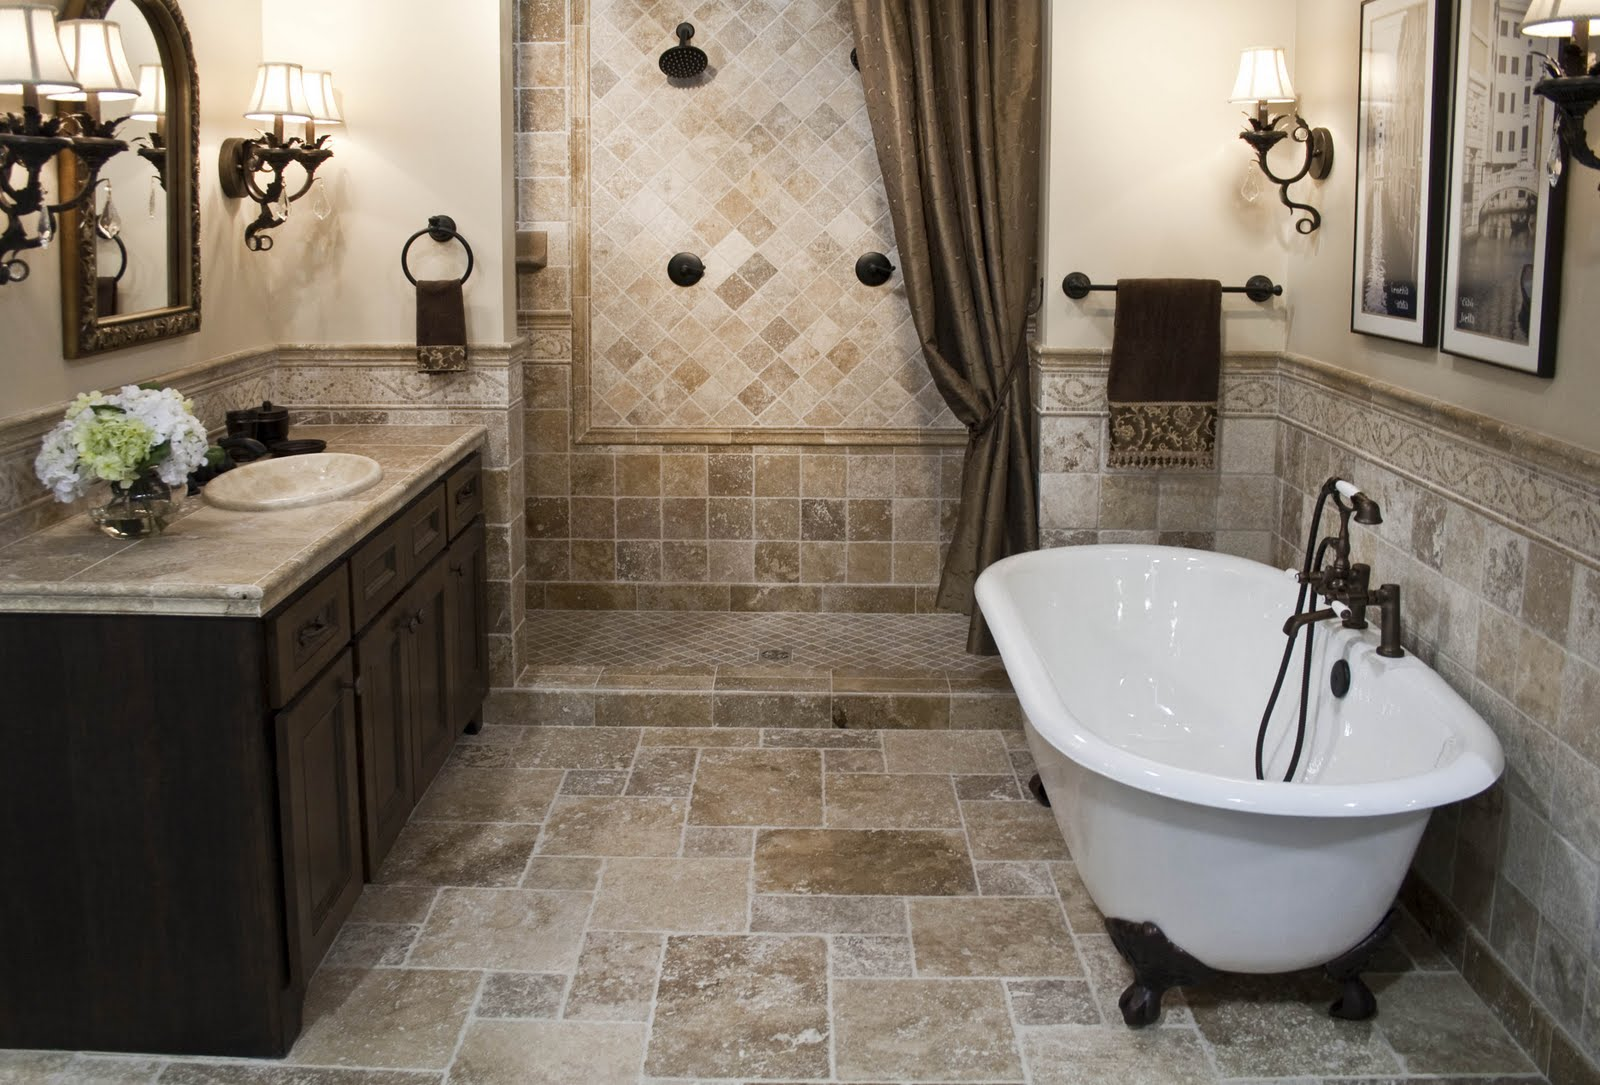 Pictures Of Bathroom Remodels bathroom remodeling | katy, tx | katy construction & remodeling